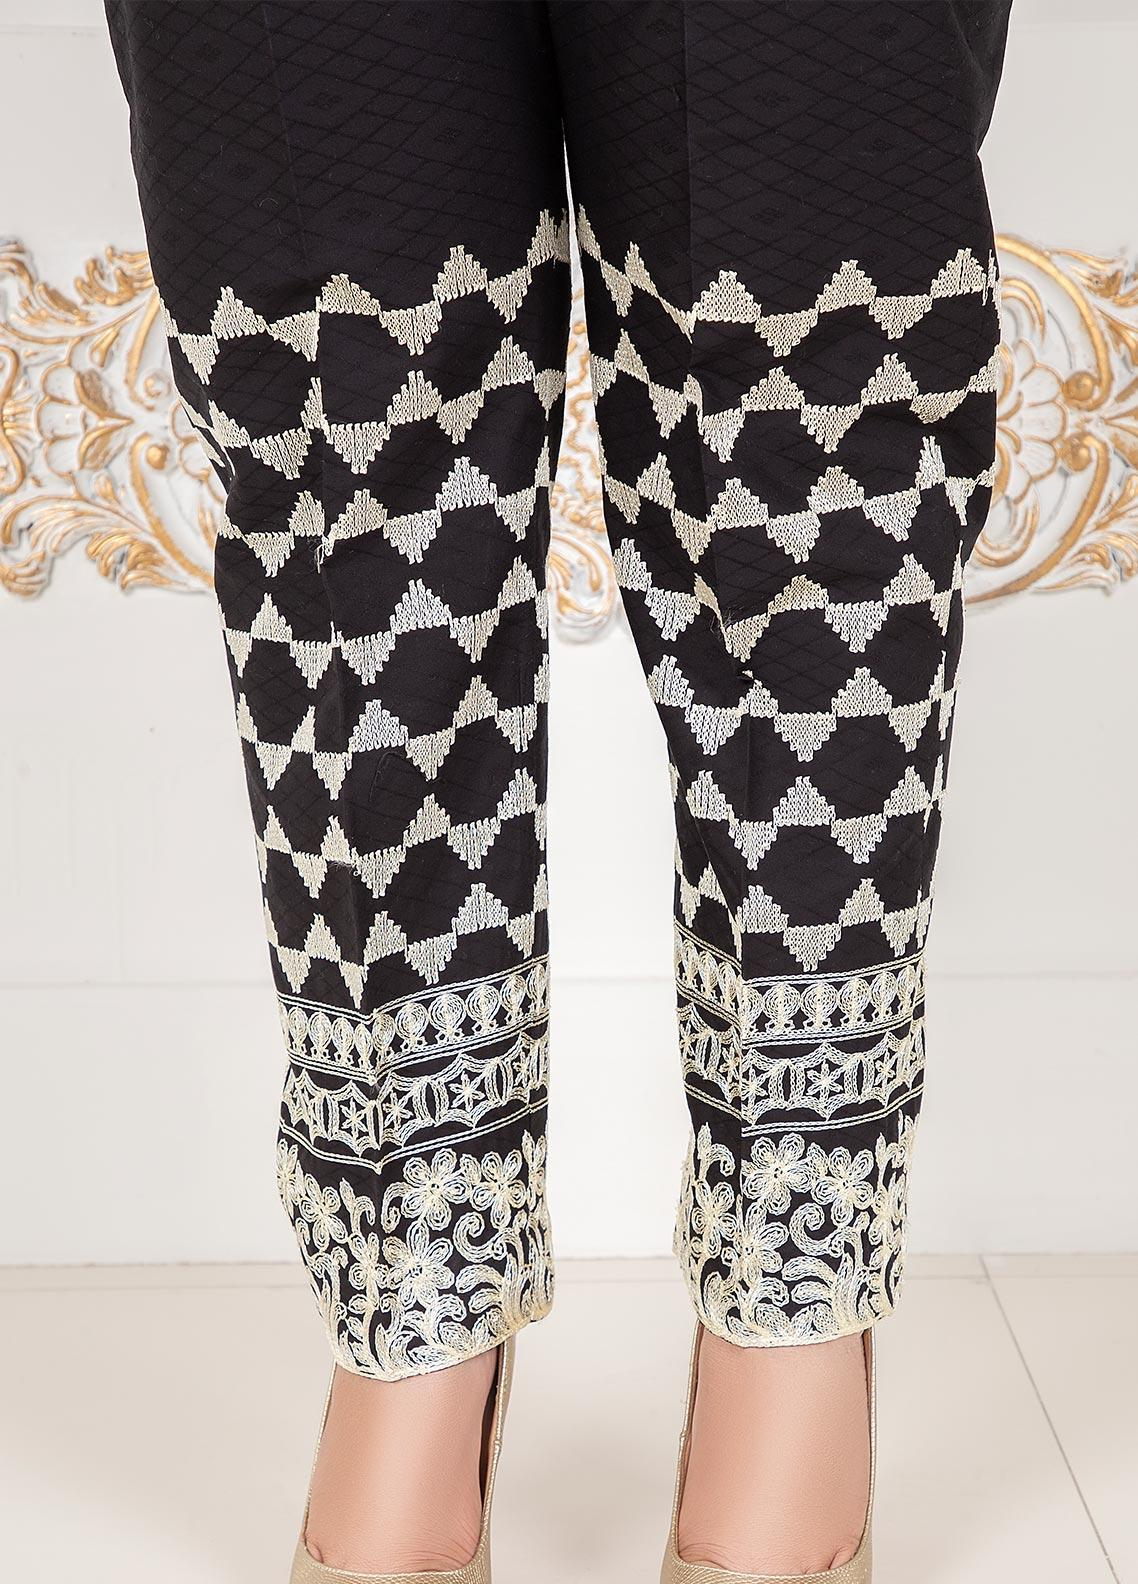 Lush Embroidered Cotton Stitched Trousers Ciggret Pants